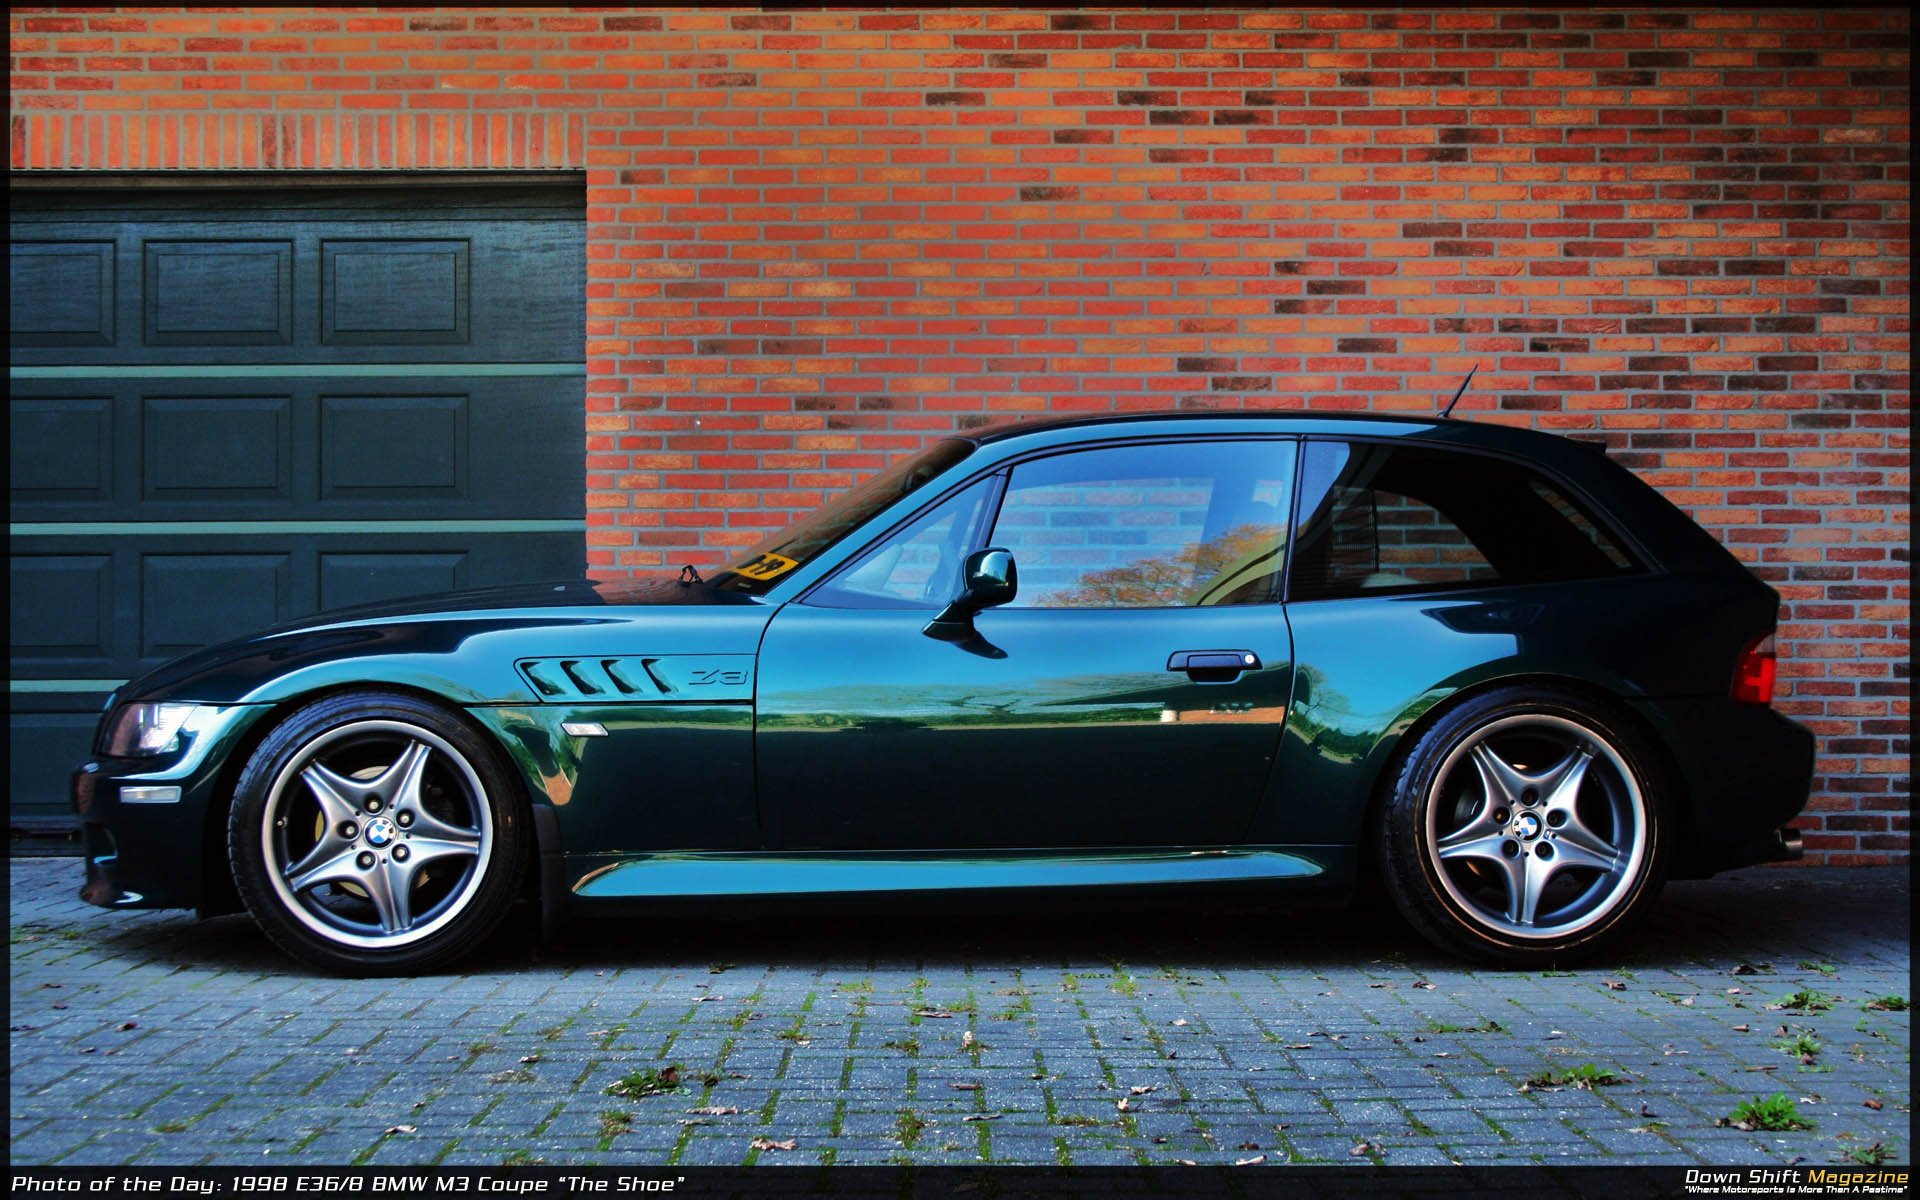 1999 Bmw Z3 M Coupe Cars Germany Wallpaper 1920x1200 411704 Wallpaperup